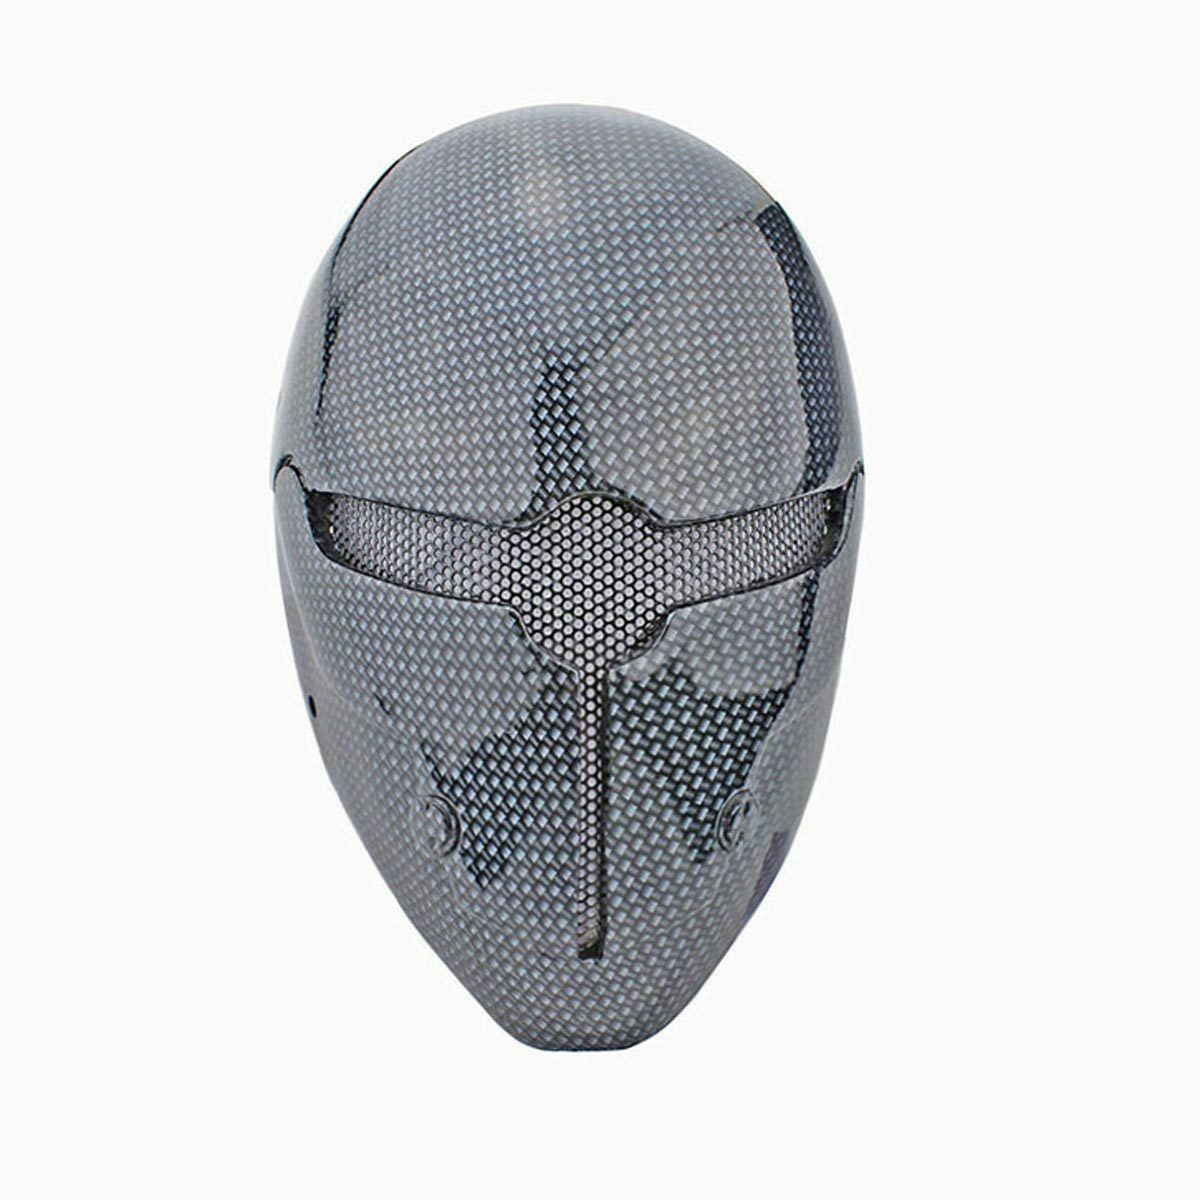 NEW Paintball Airsoft Wire Mesh Full Face Predection Robot Halloween Mask M028